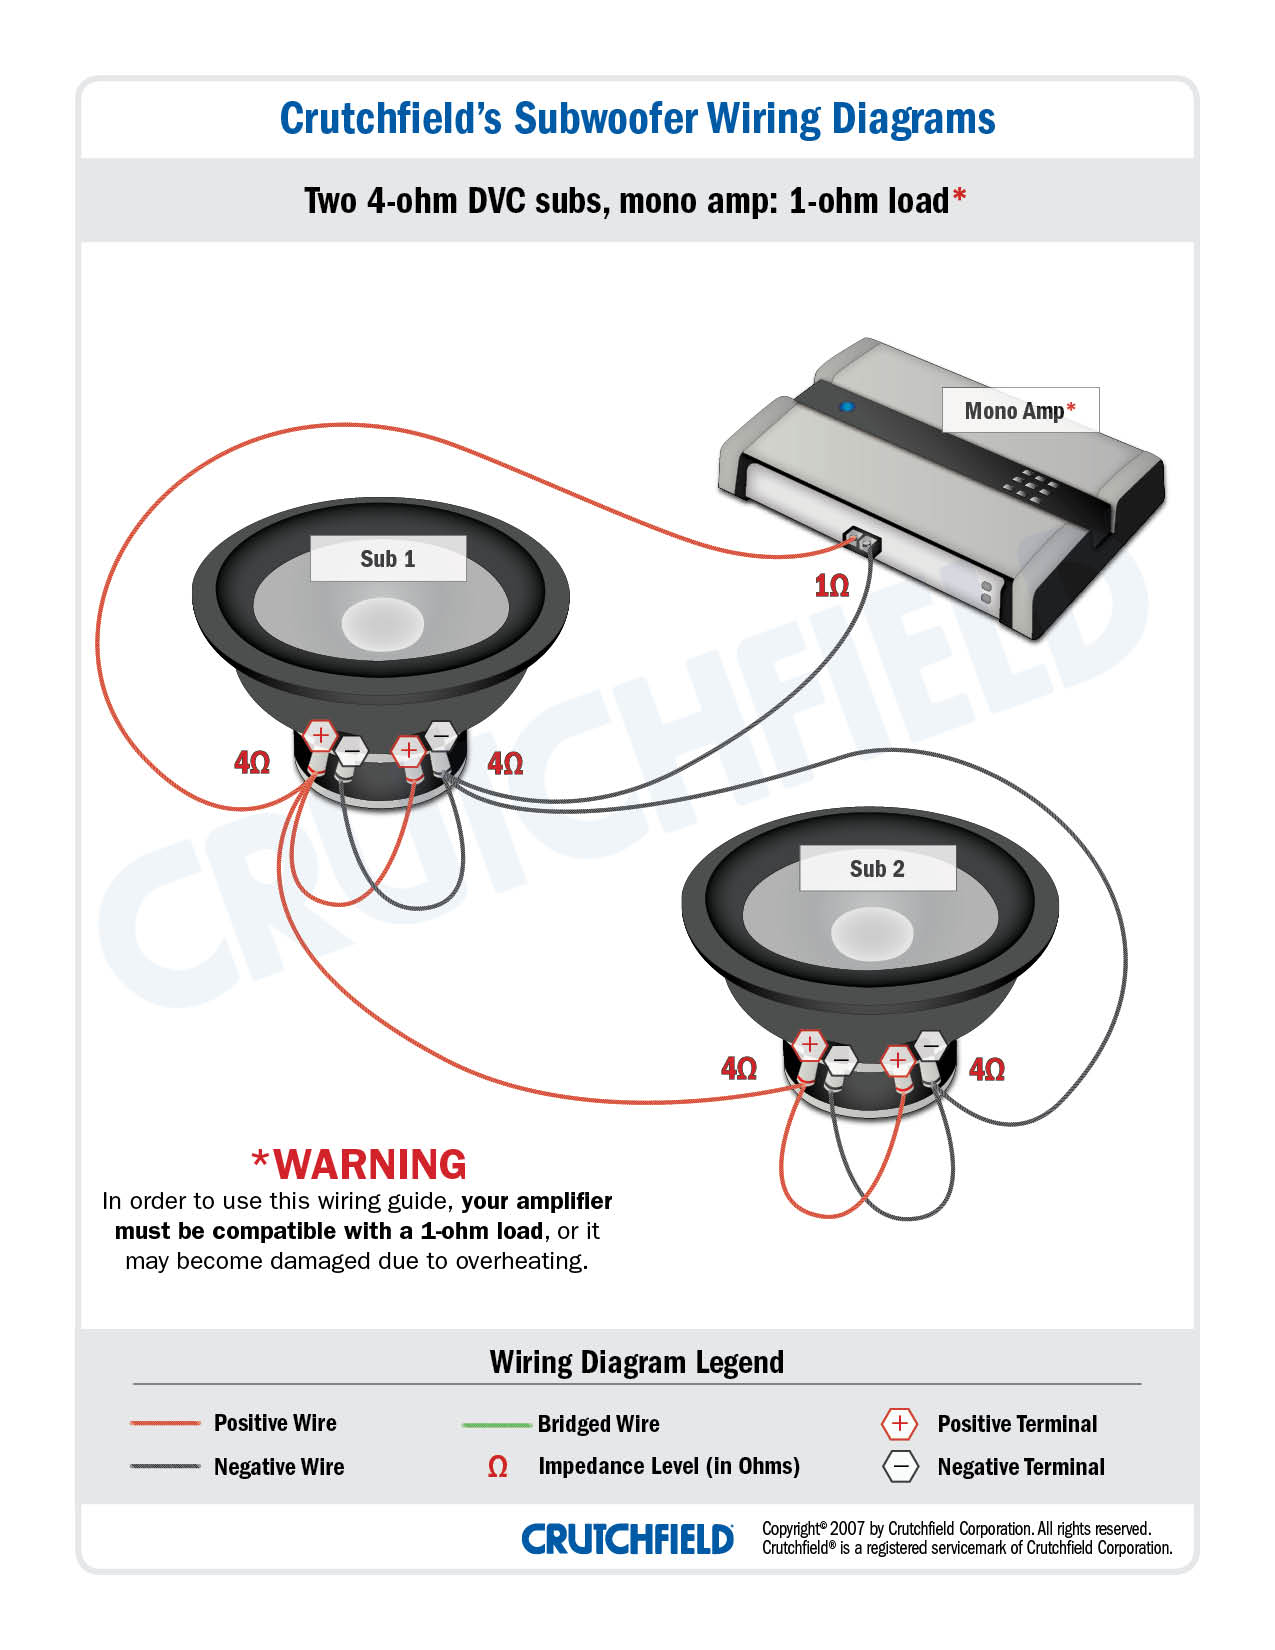 Astounding Subwoofer Wiring Diagrams How To Wire Your Subs Wiring Cloud Staixaidewilluminateatxorg